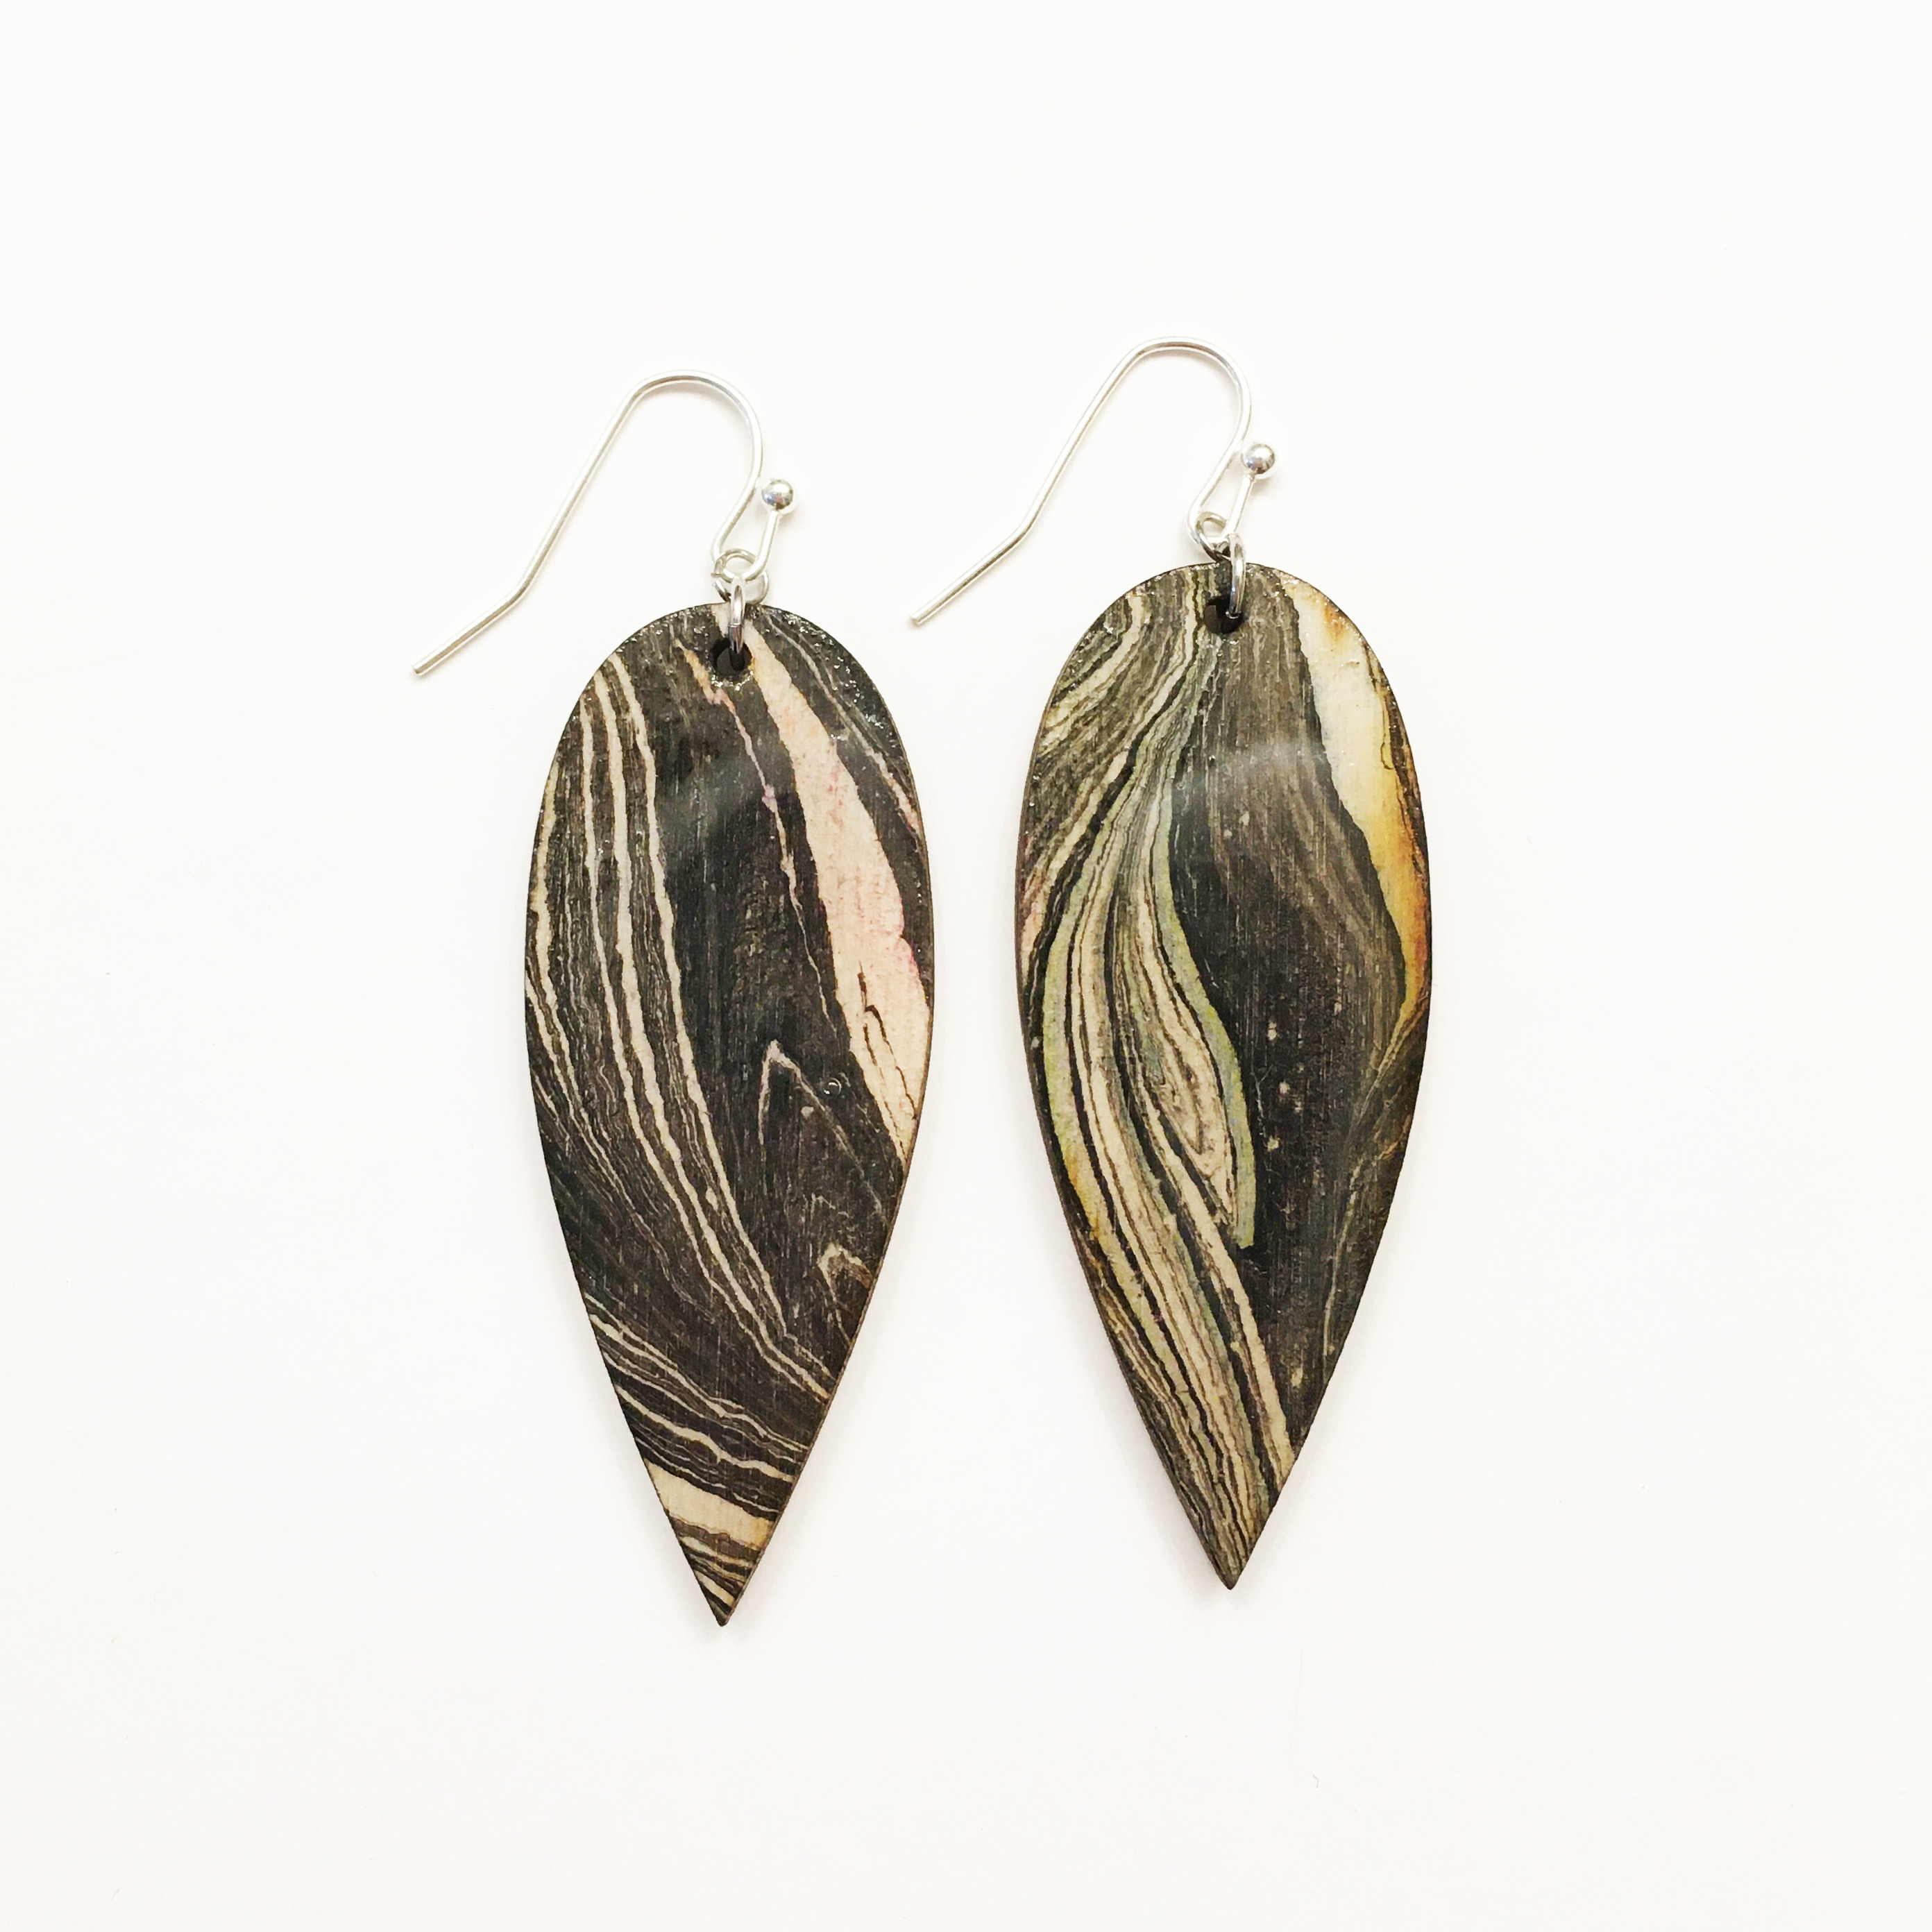 Teardrop Earrings – Black And White Marbled